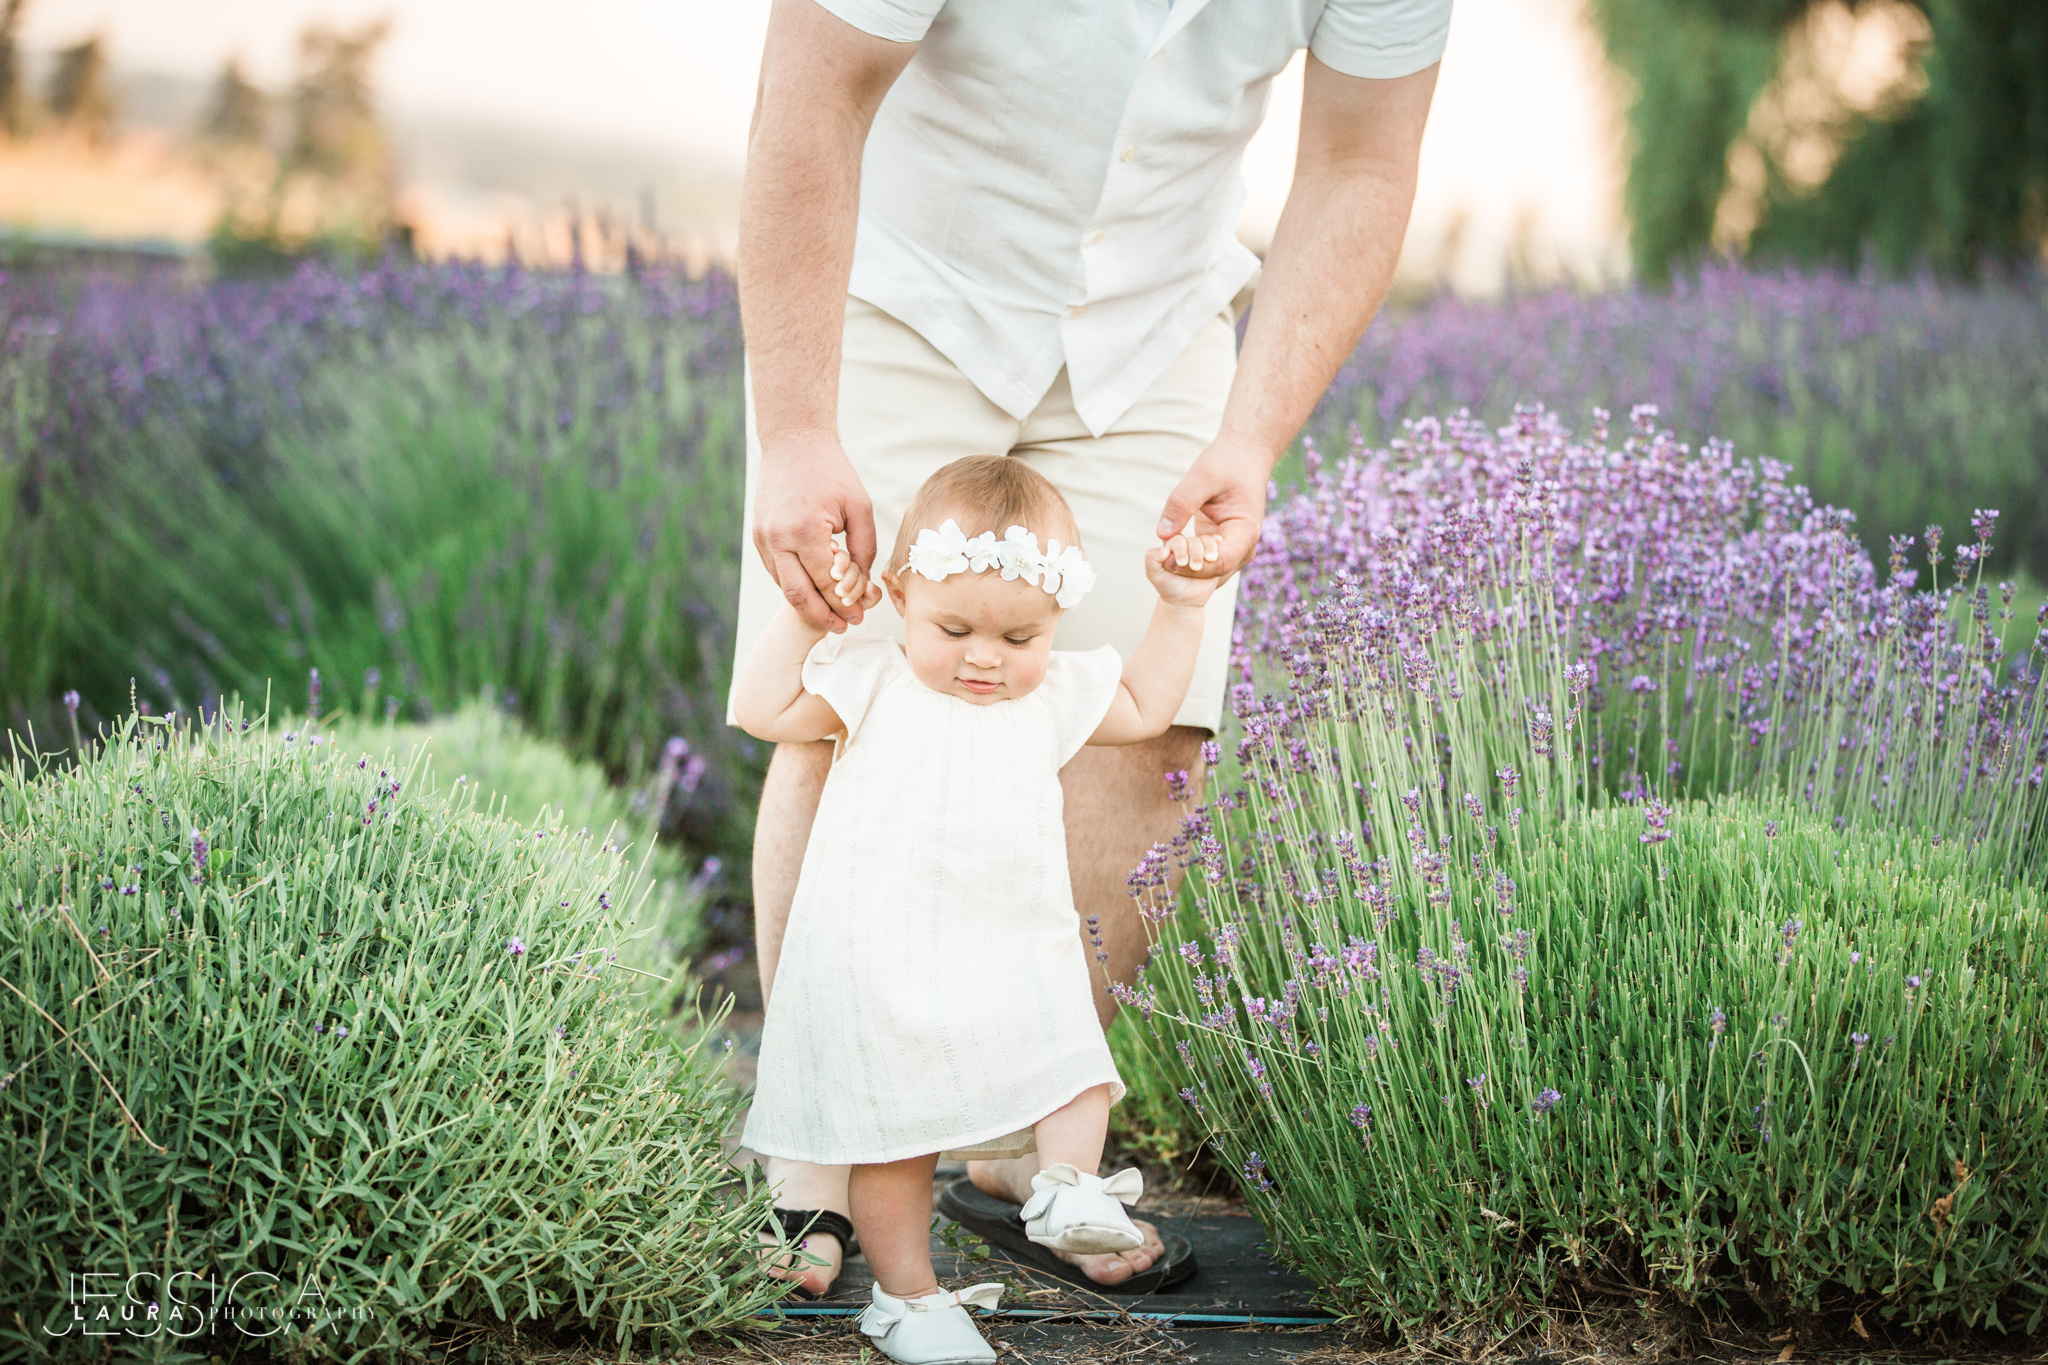 yunin-family-lavendar-WEB (59 of 82).jpg